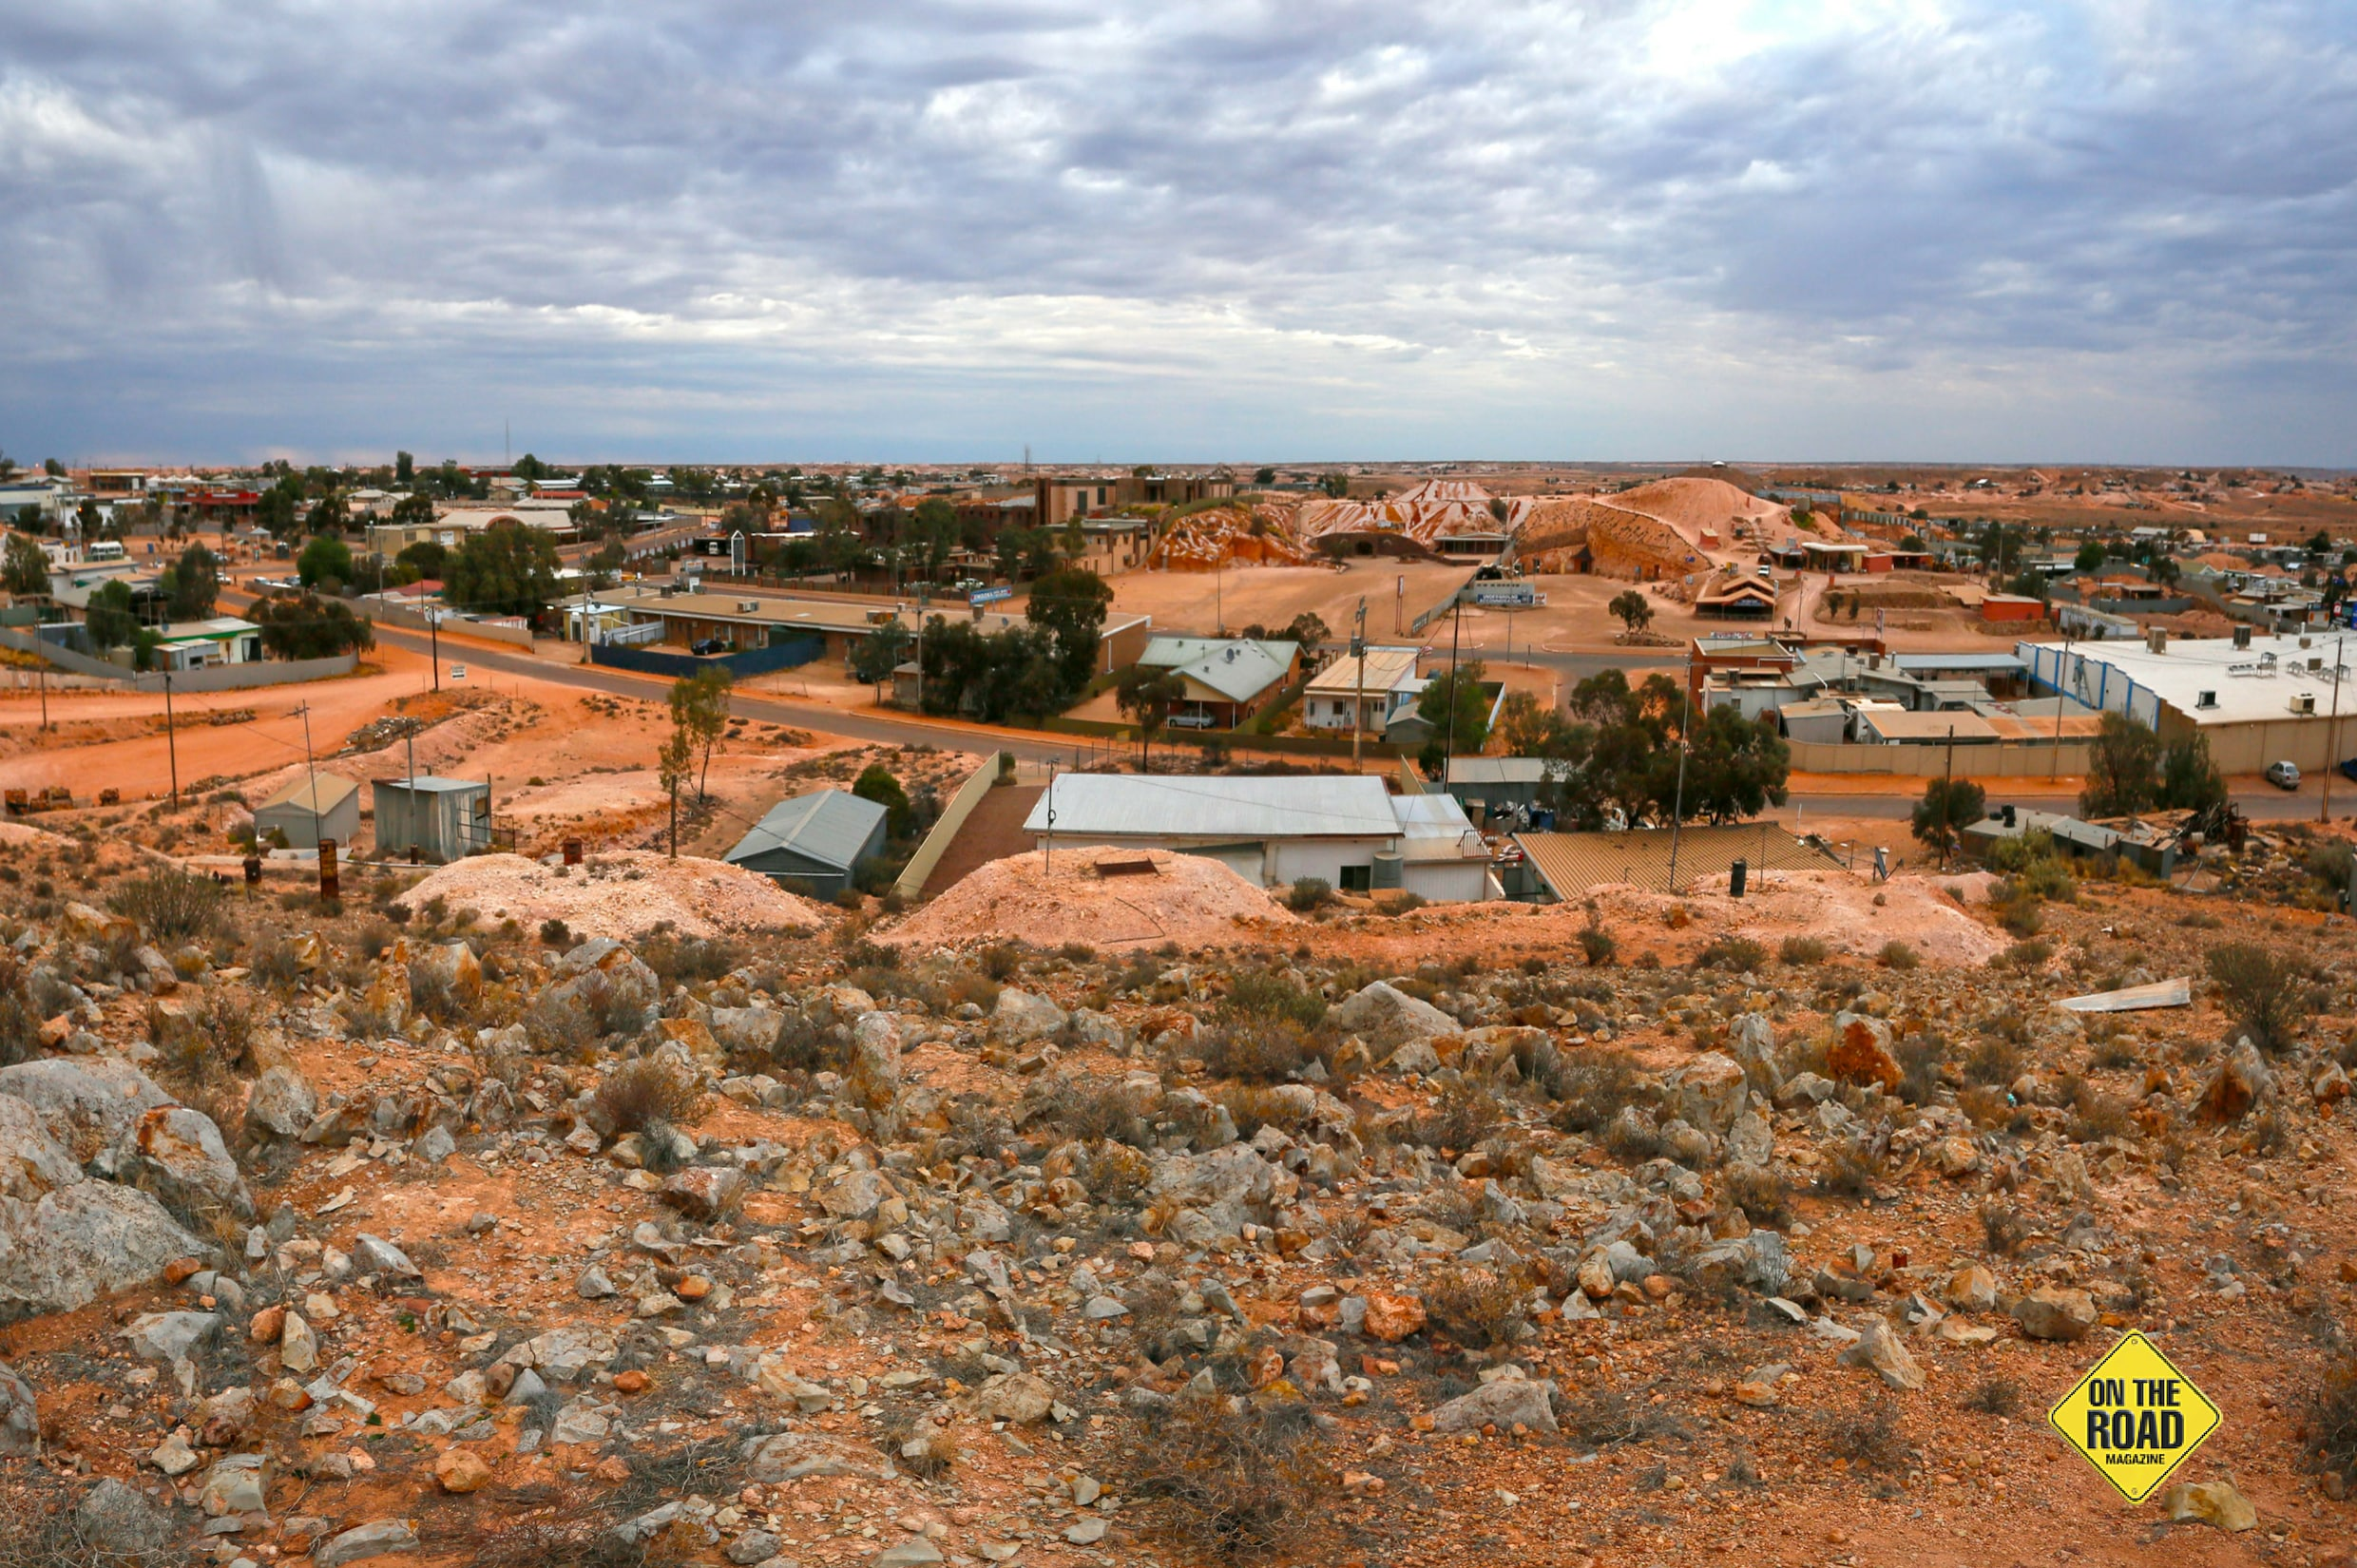 A view of Coober Pedy over Hutchison Street